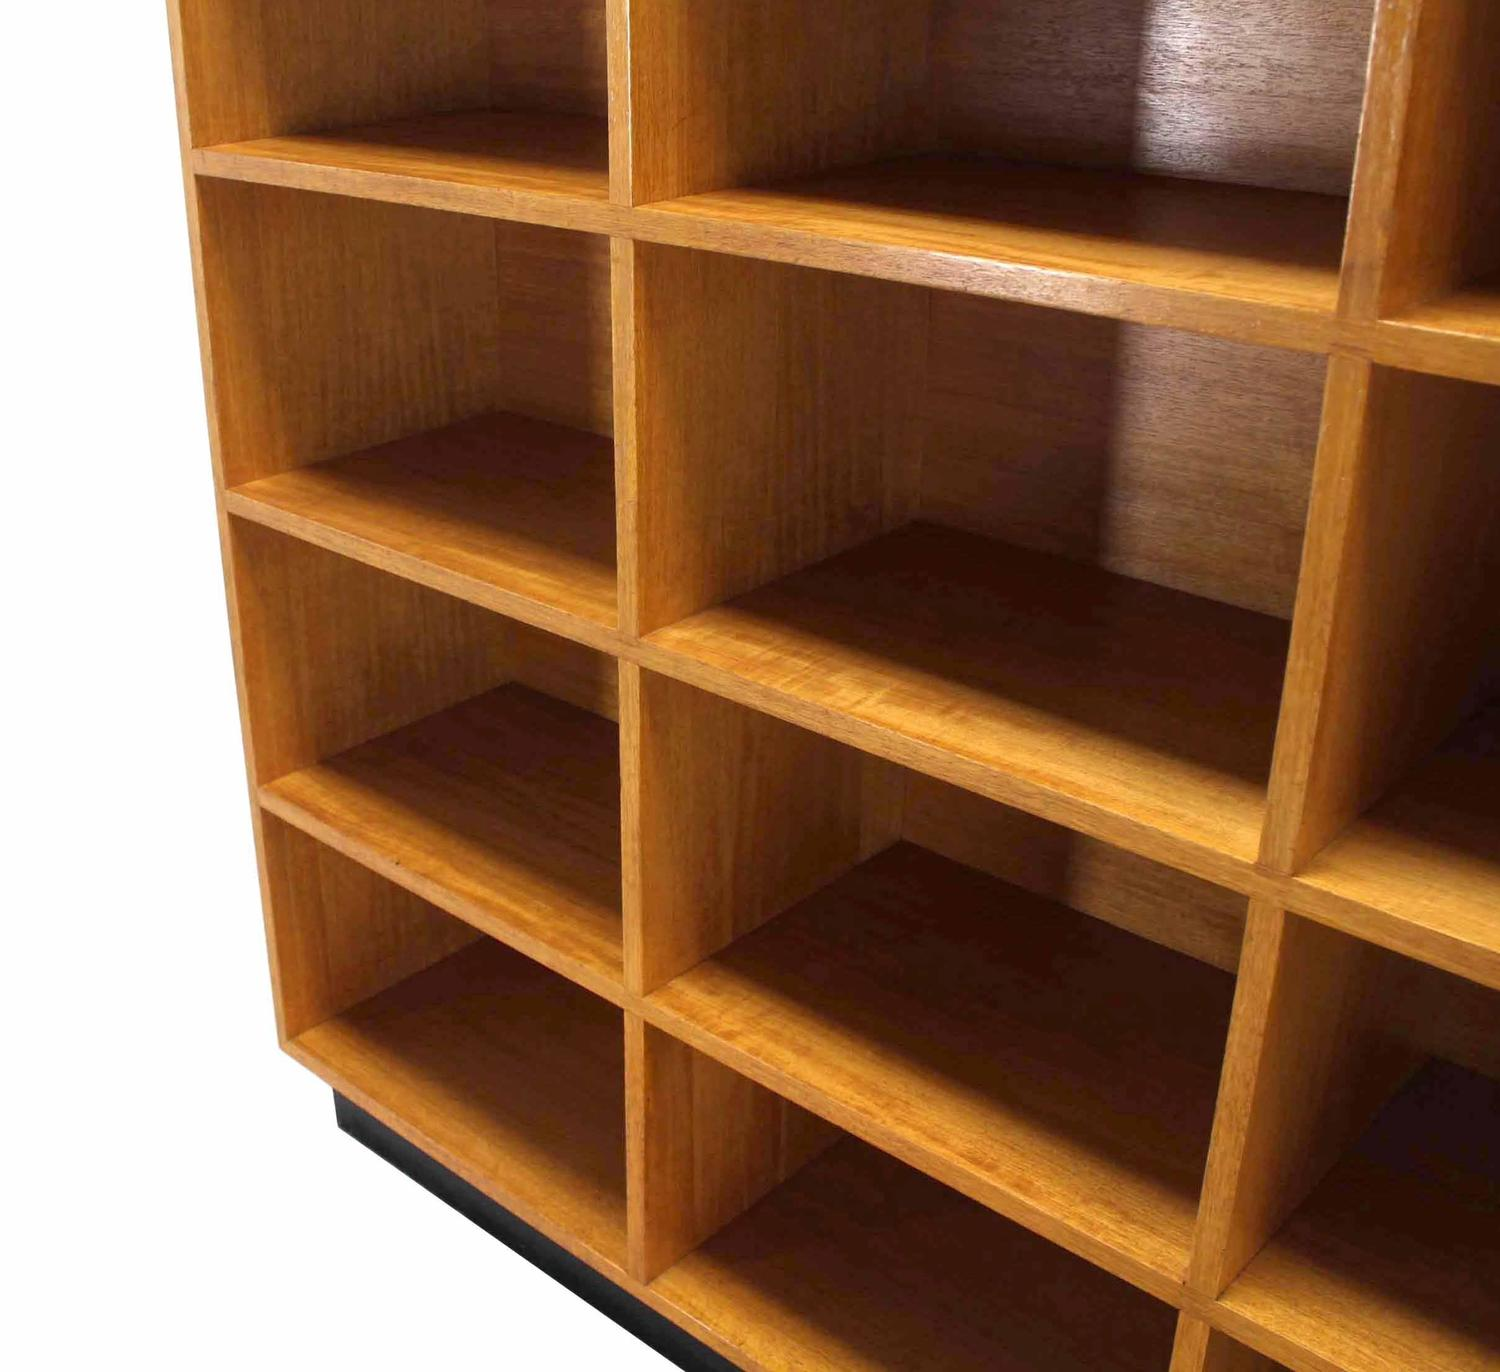 Wood Bookshelves For Sale: Nice Custom Solid Wood Shelving Unit Bookcase For Sale At